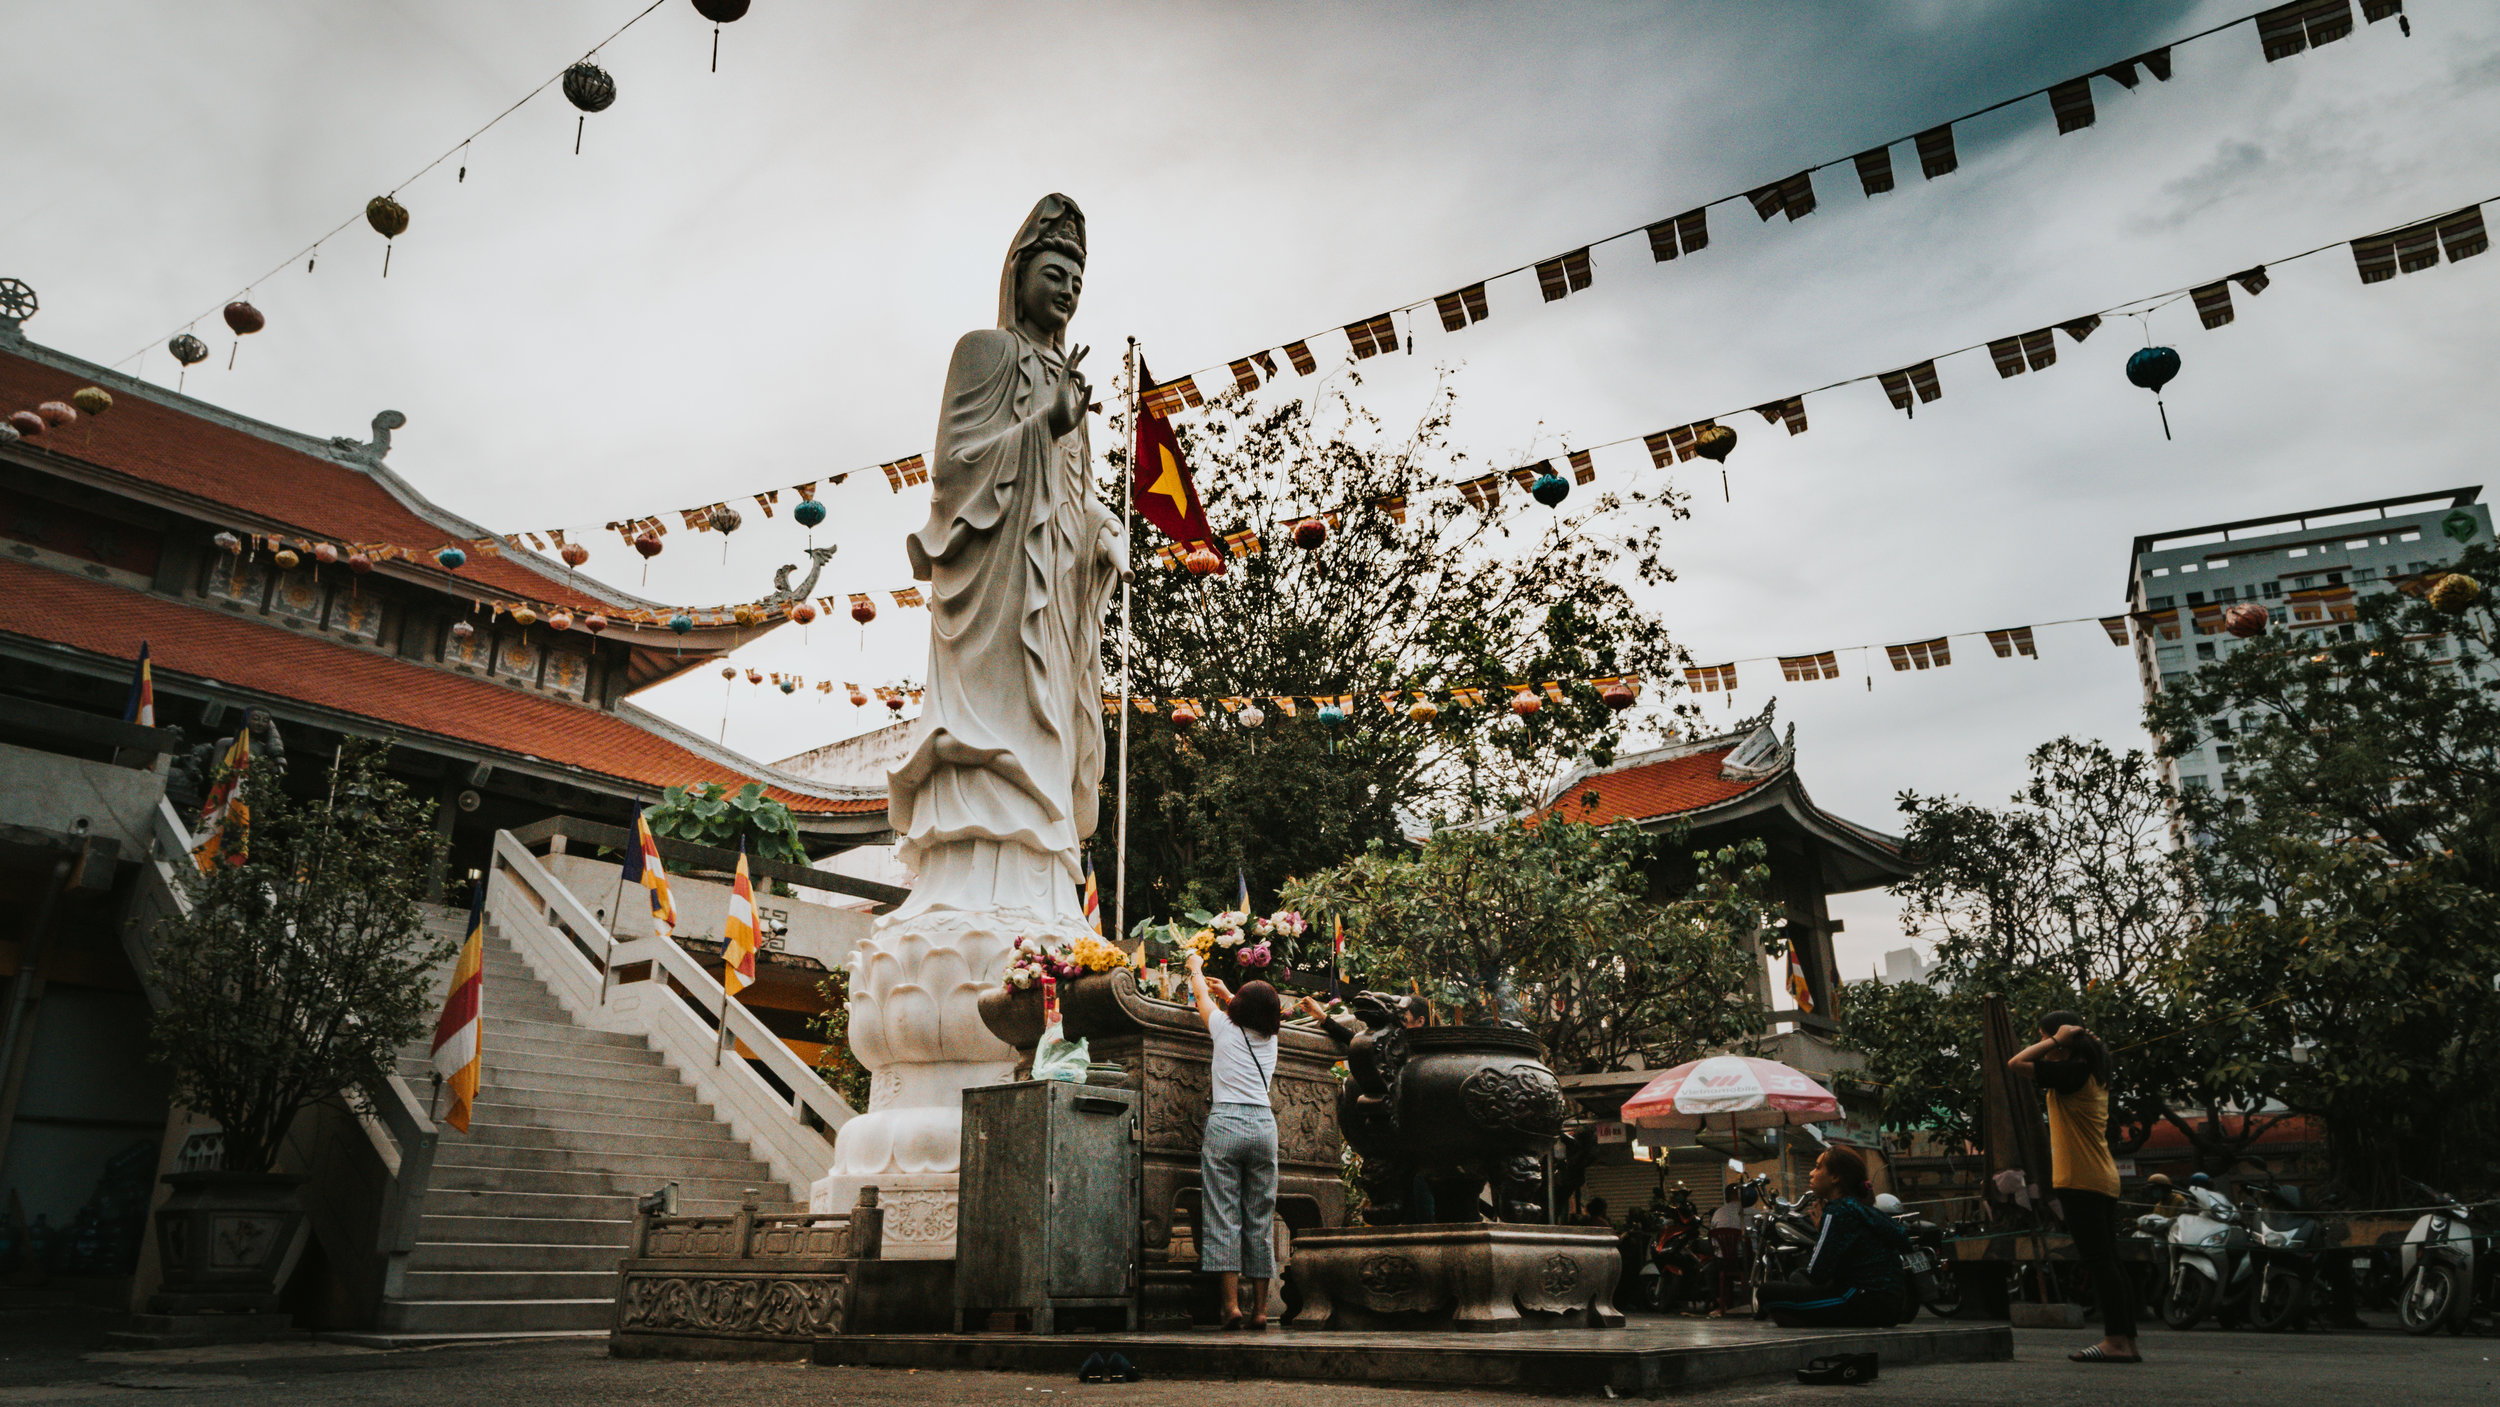 Guanyin statue at the courtyard entrance